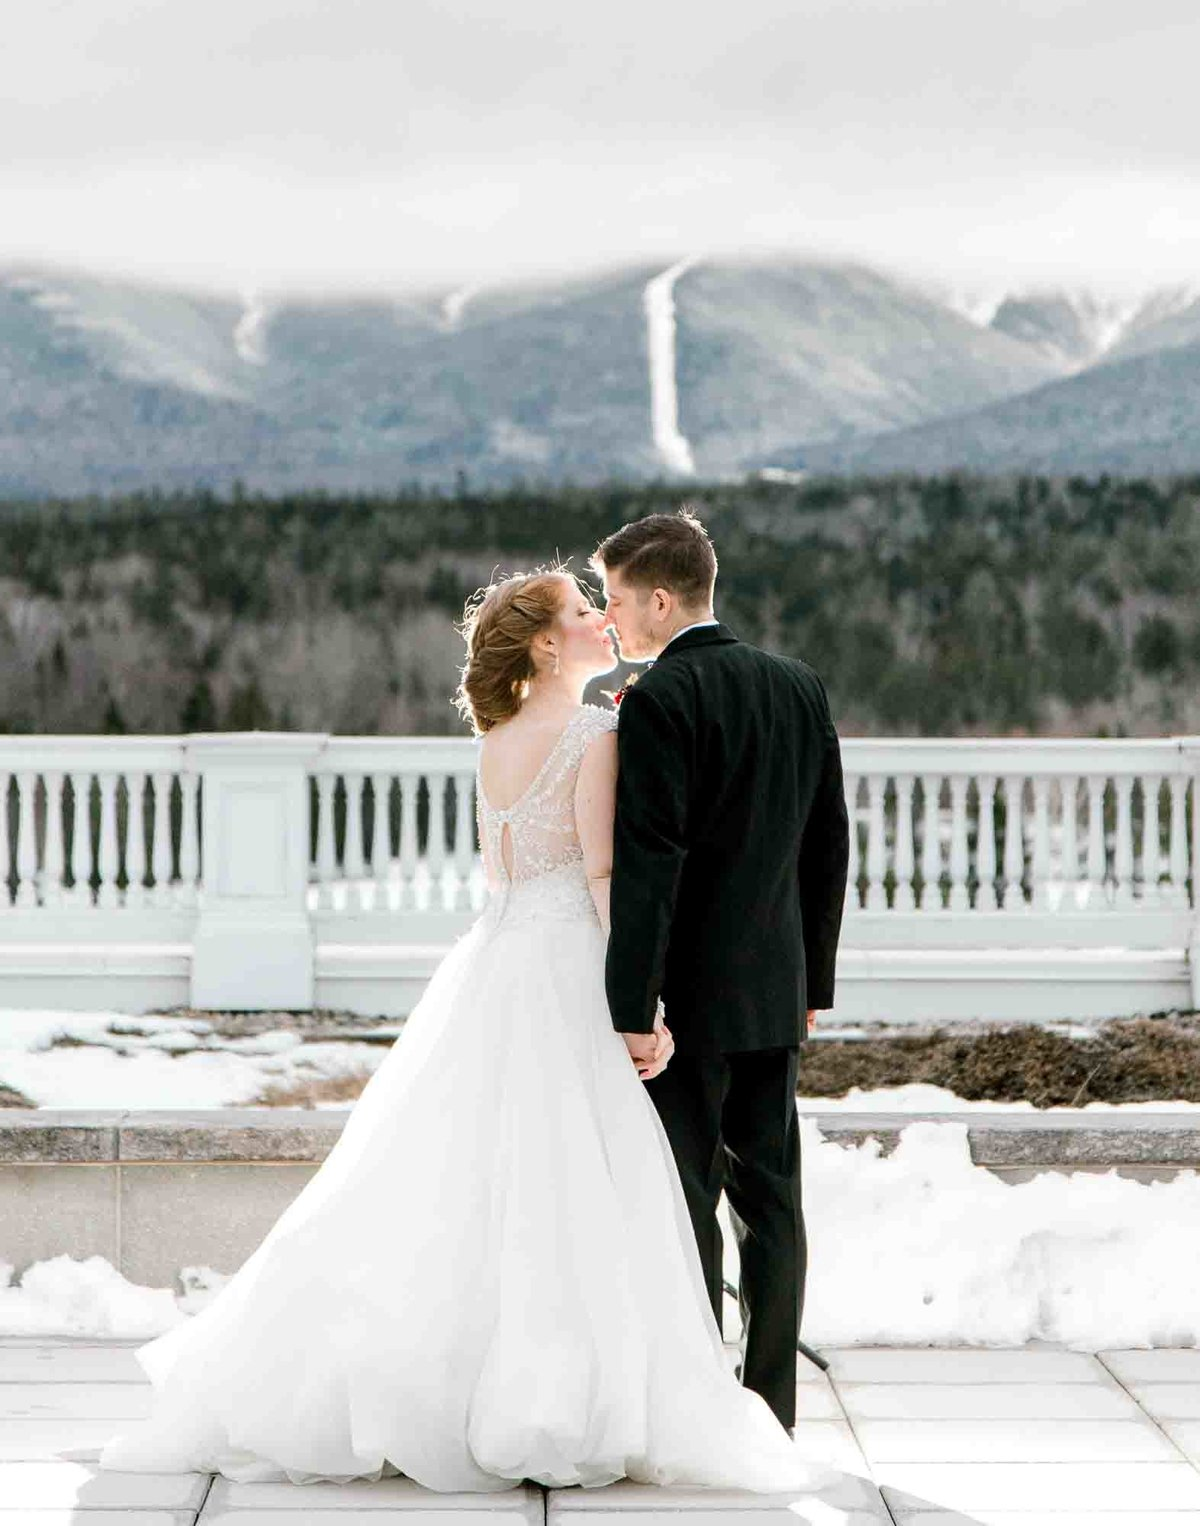 Bride and Groom kiss during their winter wedding at the Omni Mount Washington Resort.  Image by K. Lenox Photography